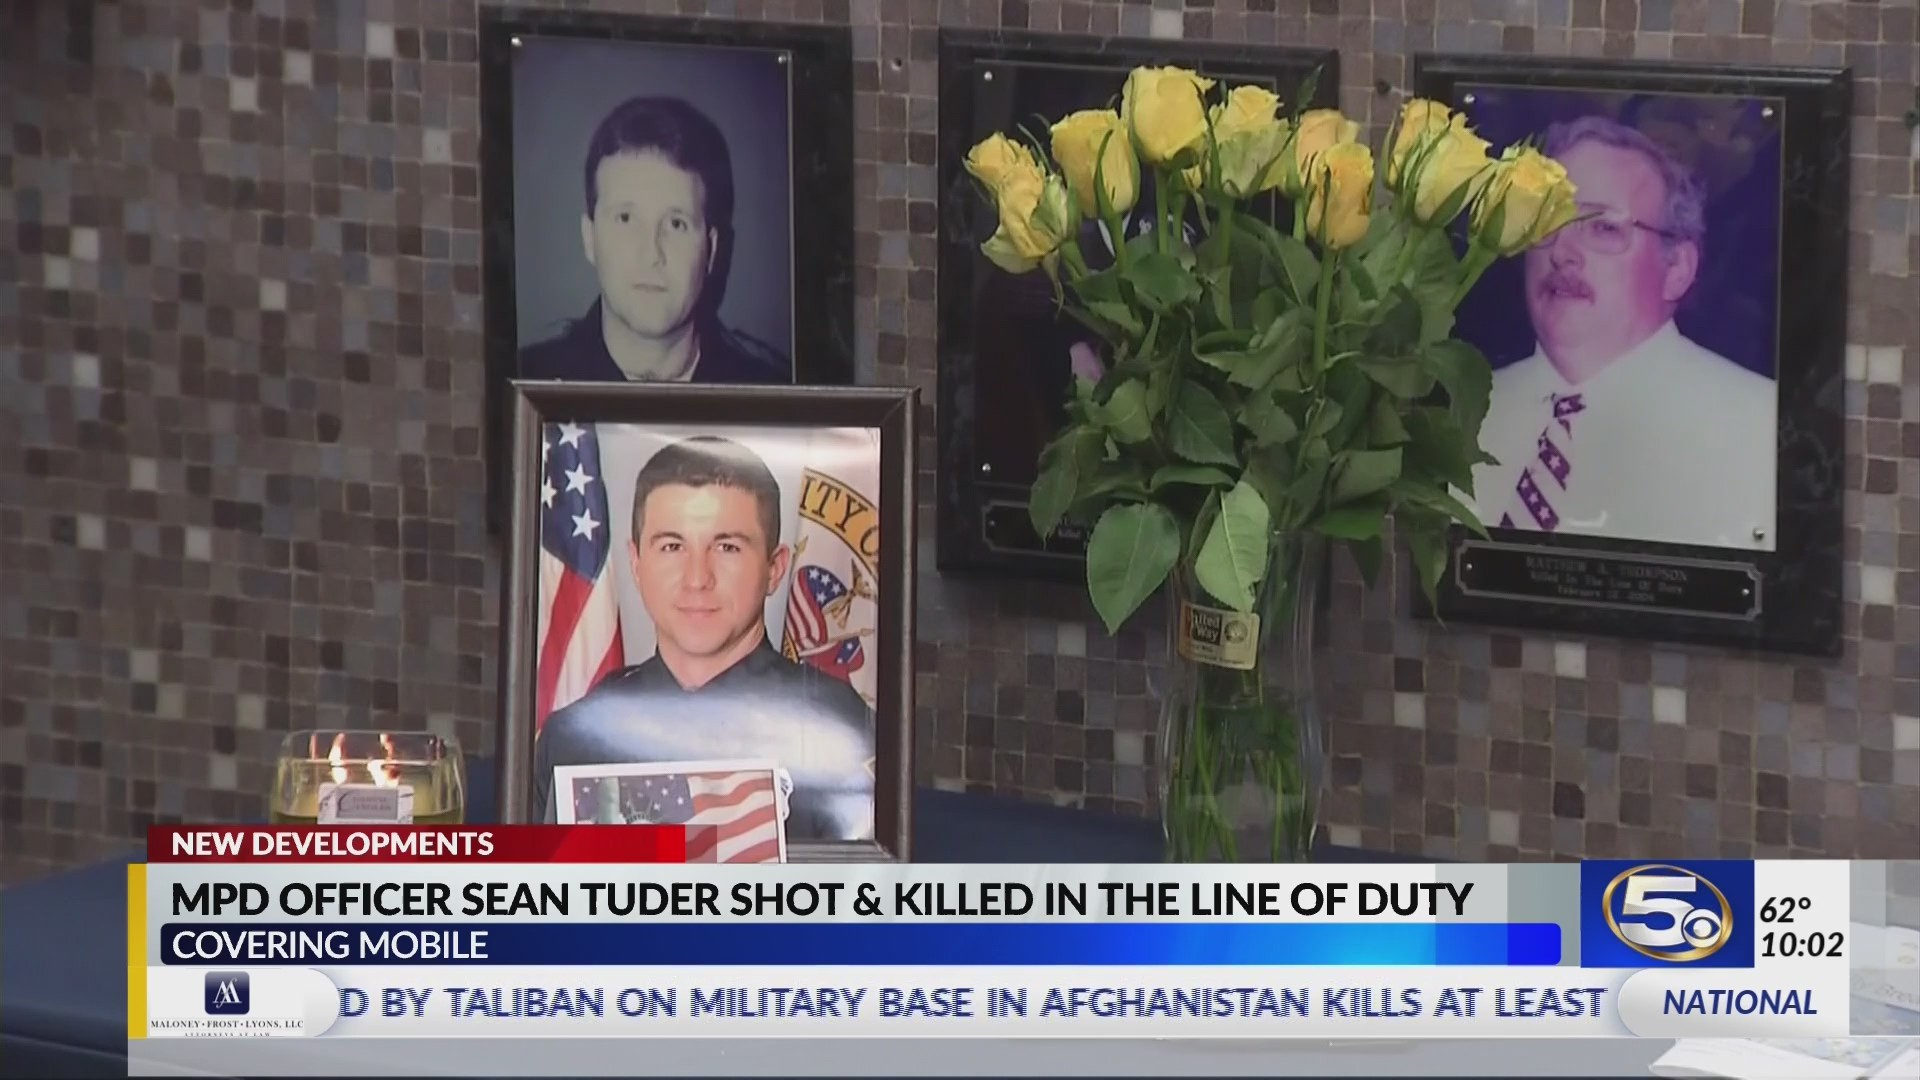 VIDEO: New developments released in Officer Tuder's death investigation